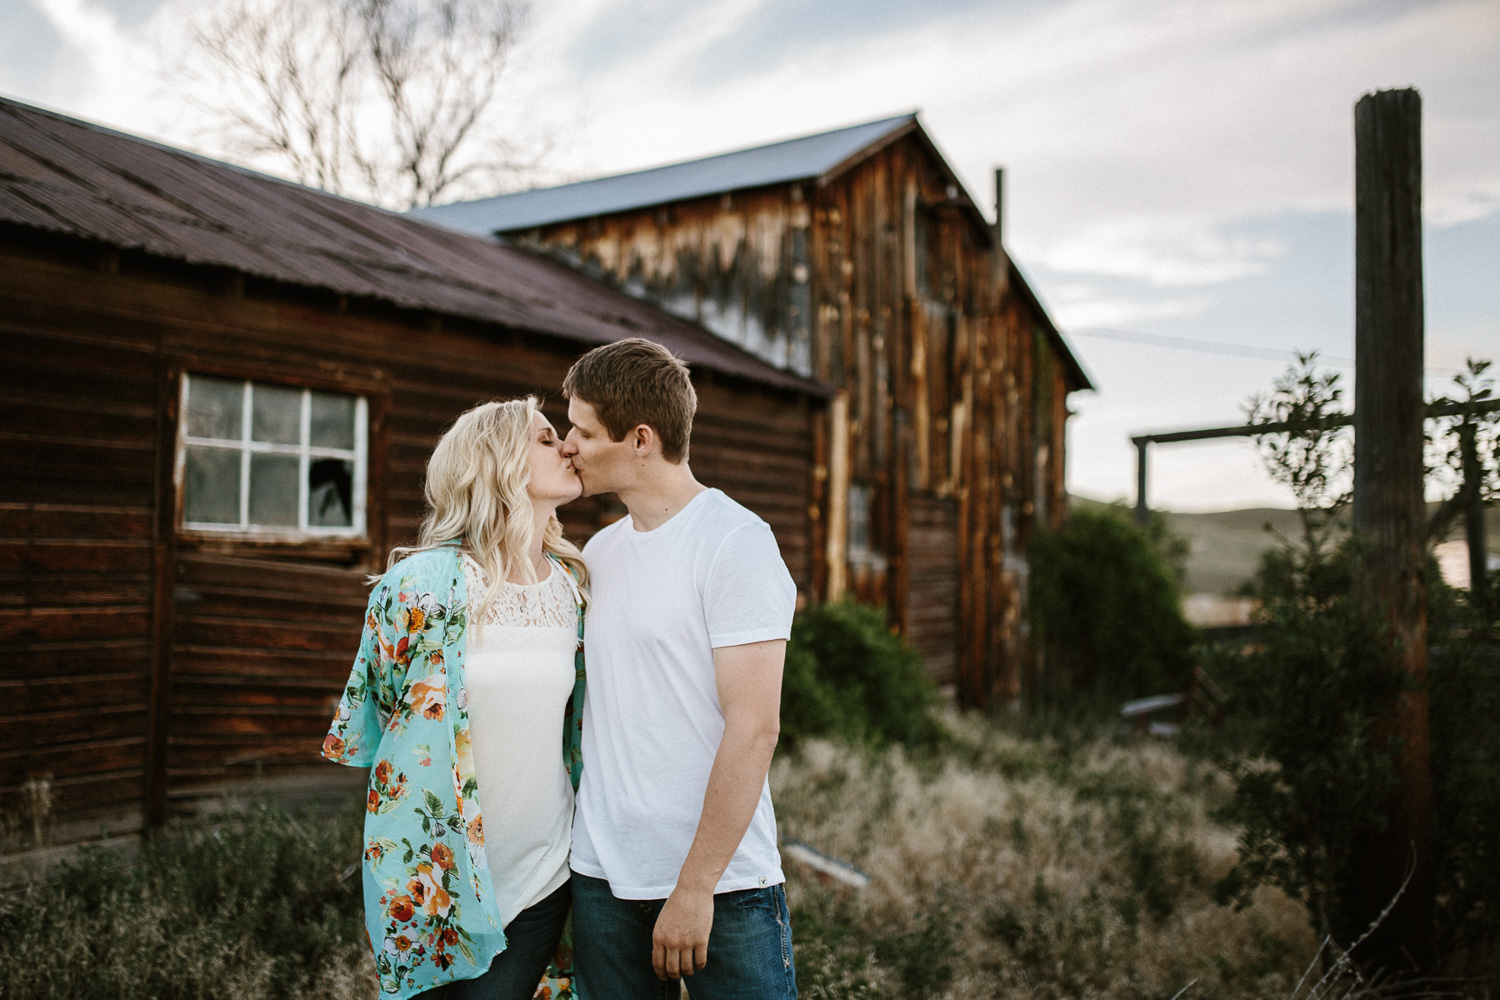 SiouxFalls_BlackHills_Adventure_Engagement_Wedding_Photographer_24.jpg